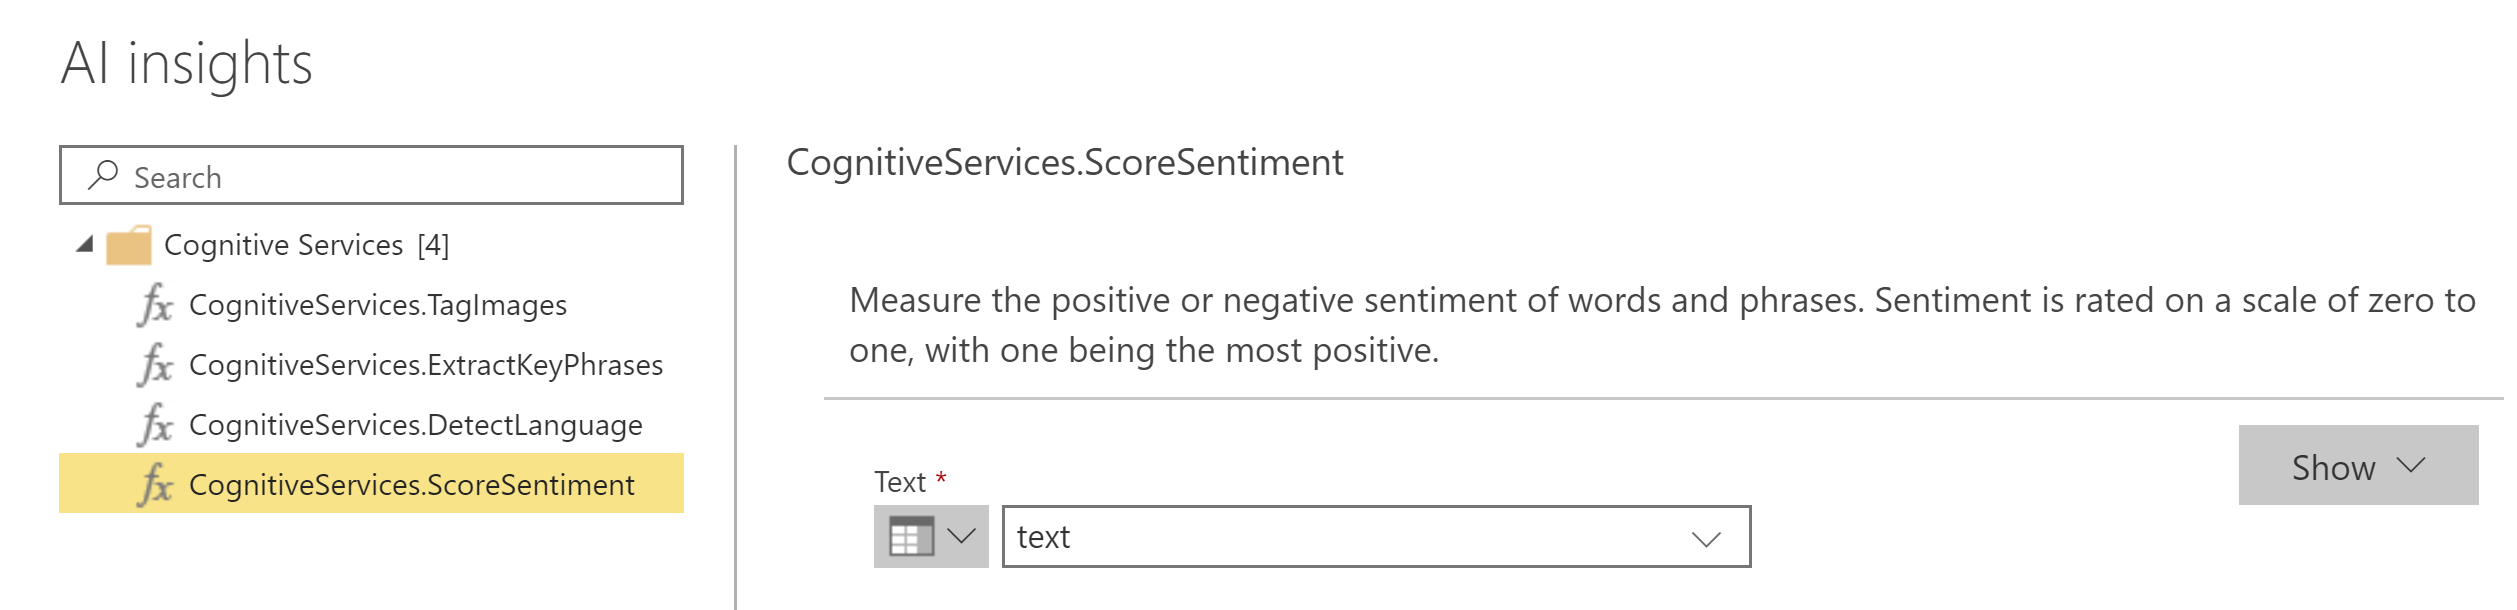 Power BI AI Insights - Score Sentiment